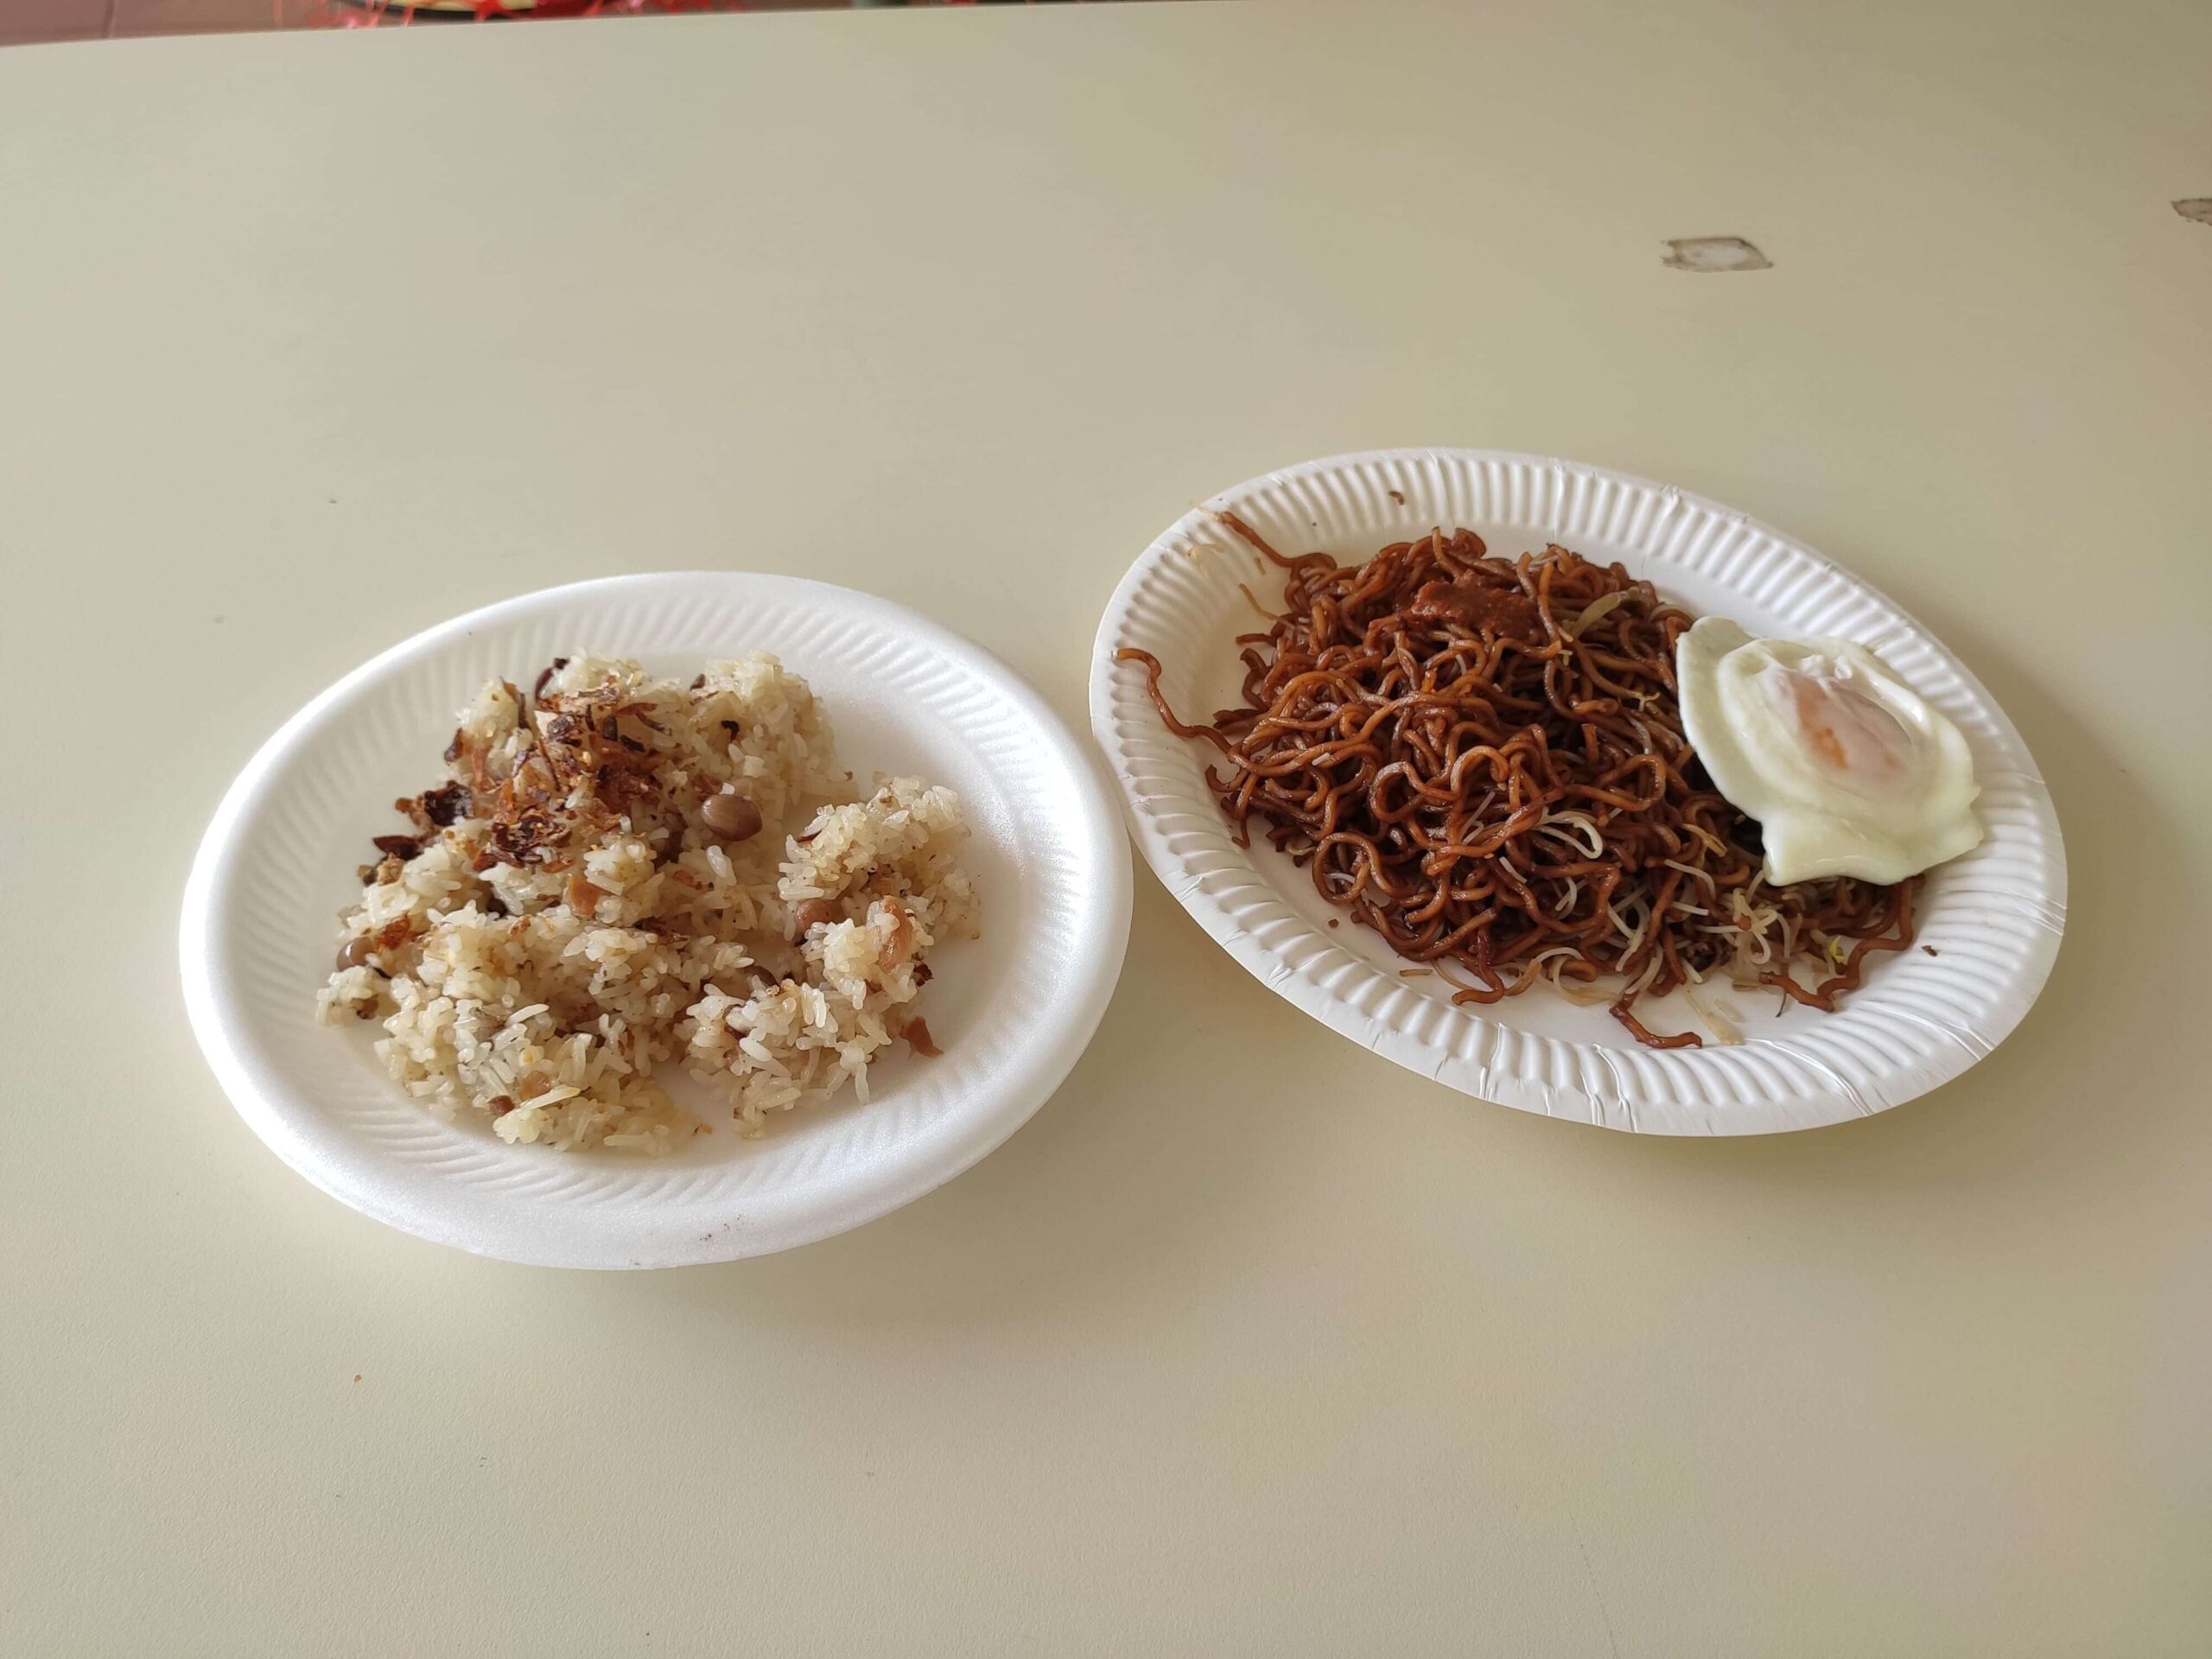 Economic Food - Havelock Road Food Centre: Glutinous Rice & Fried Noodles